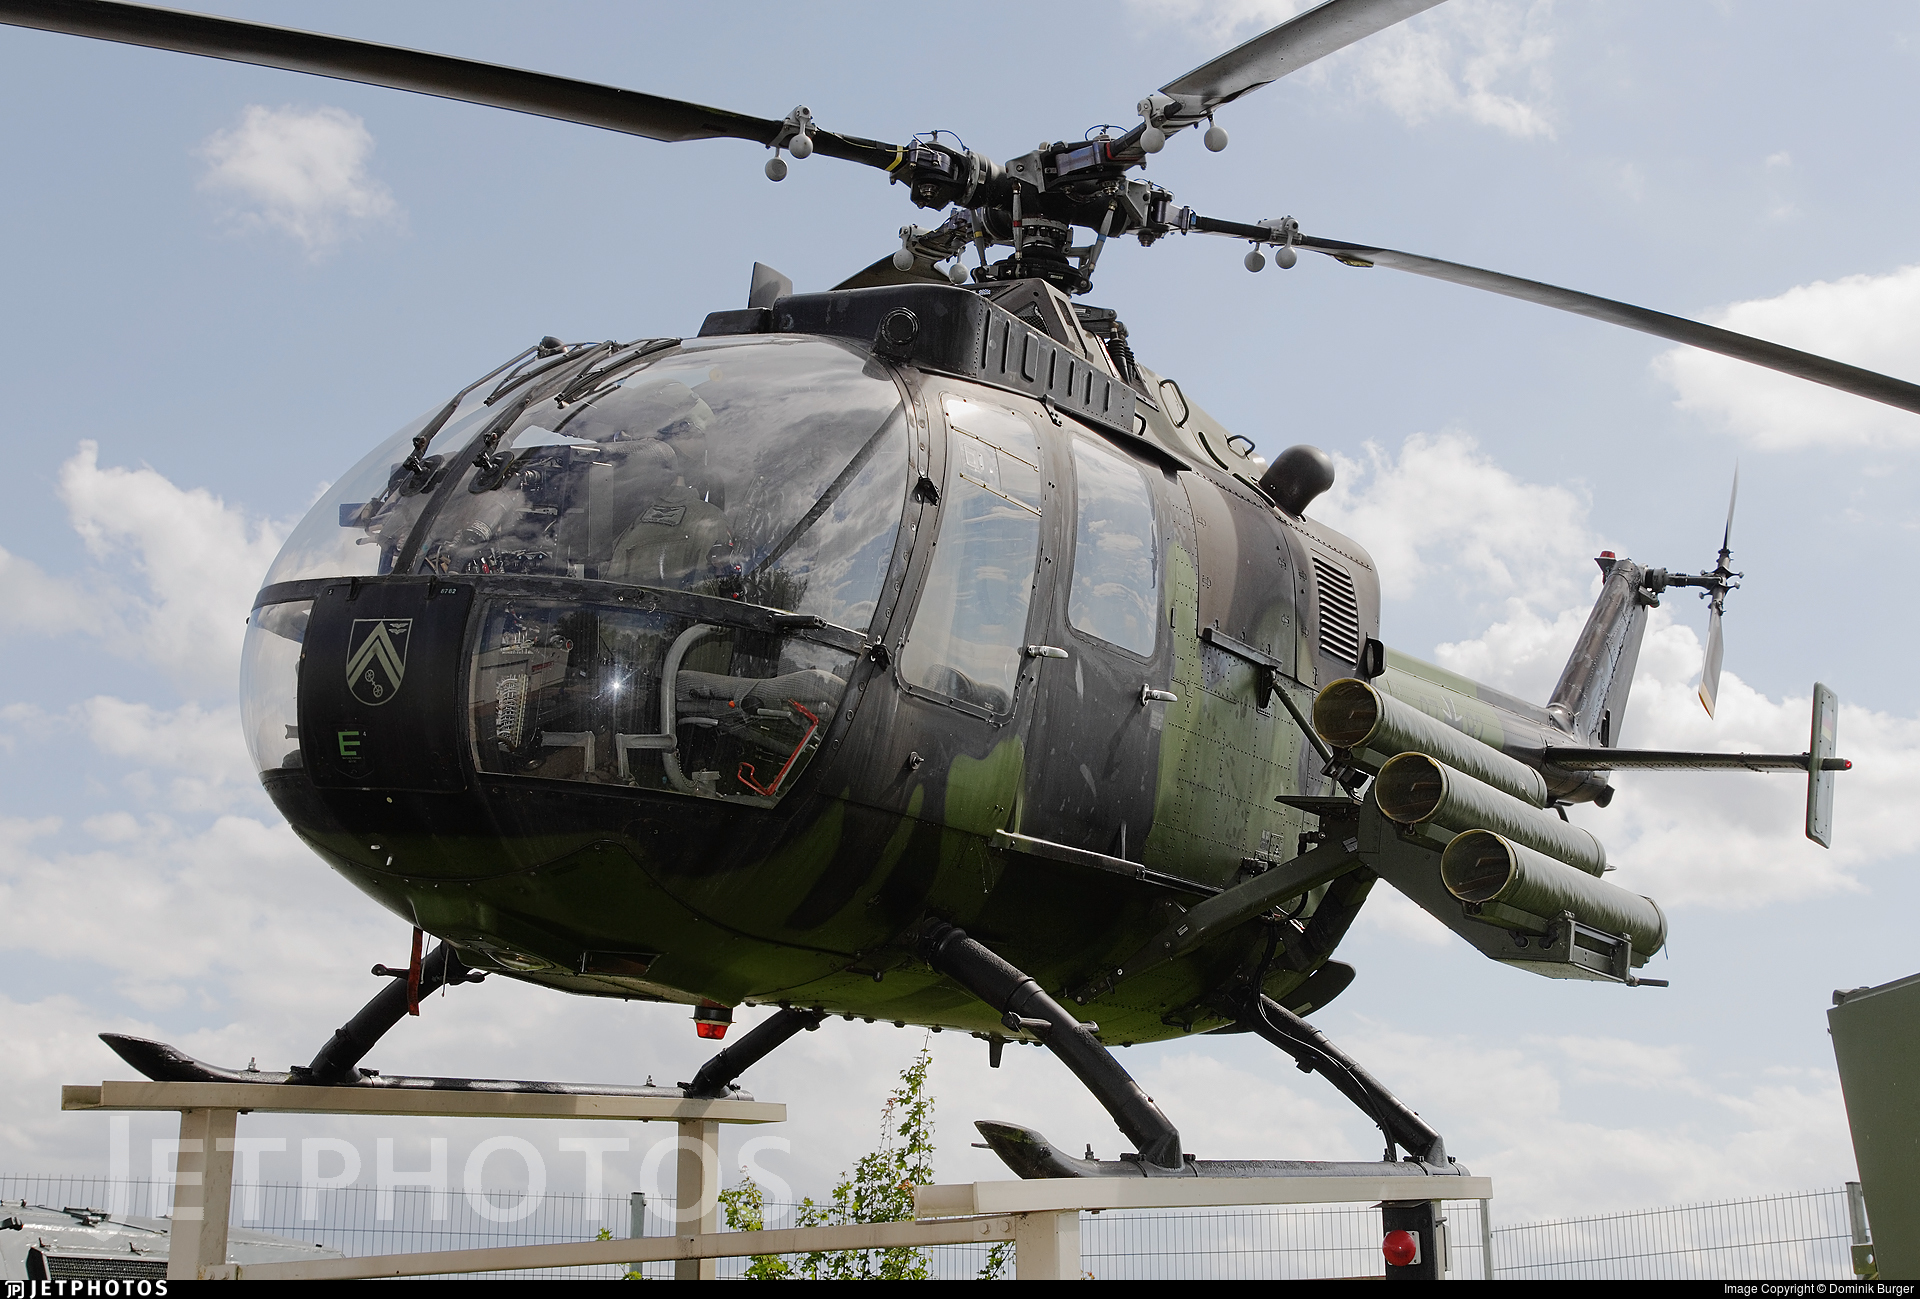 87-82 - MBB Bo105P1 - Germany - Army